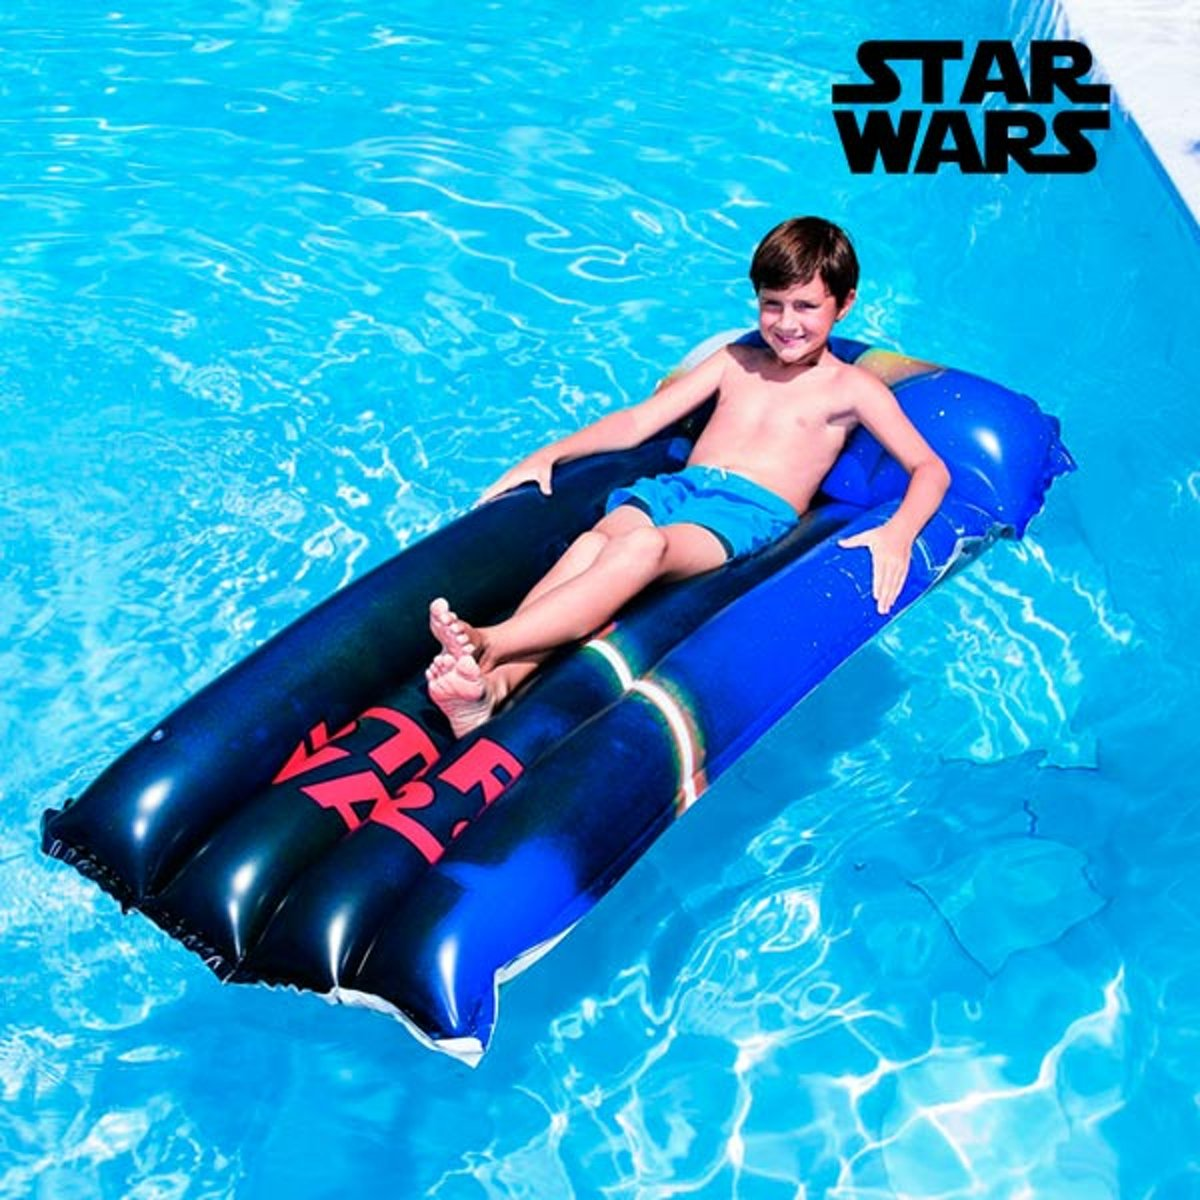 Star Wars Opblaasbare Matras